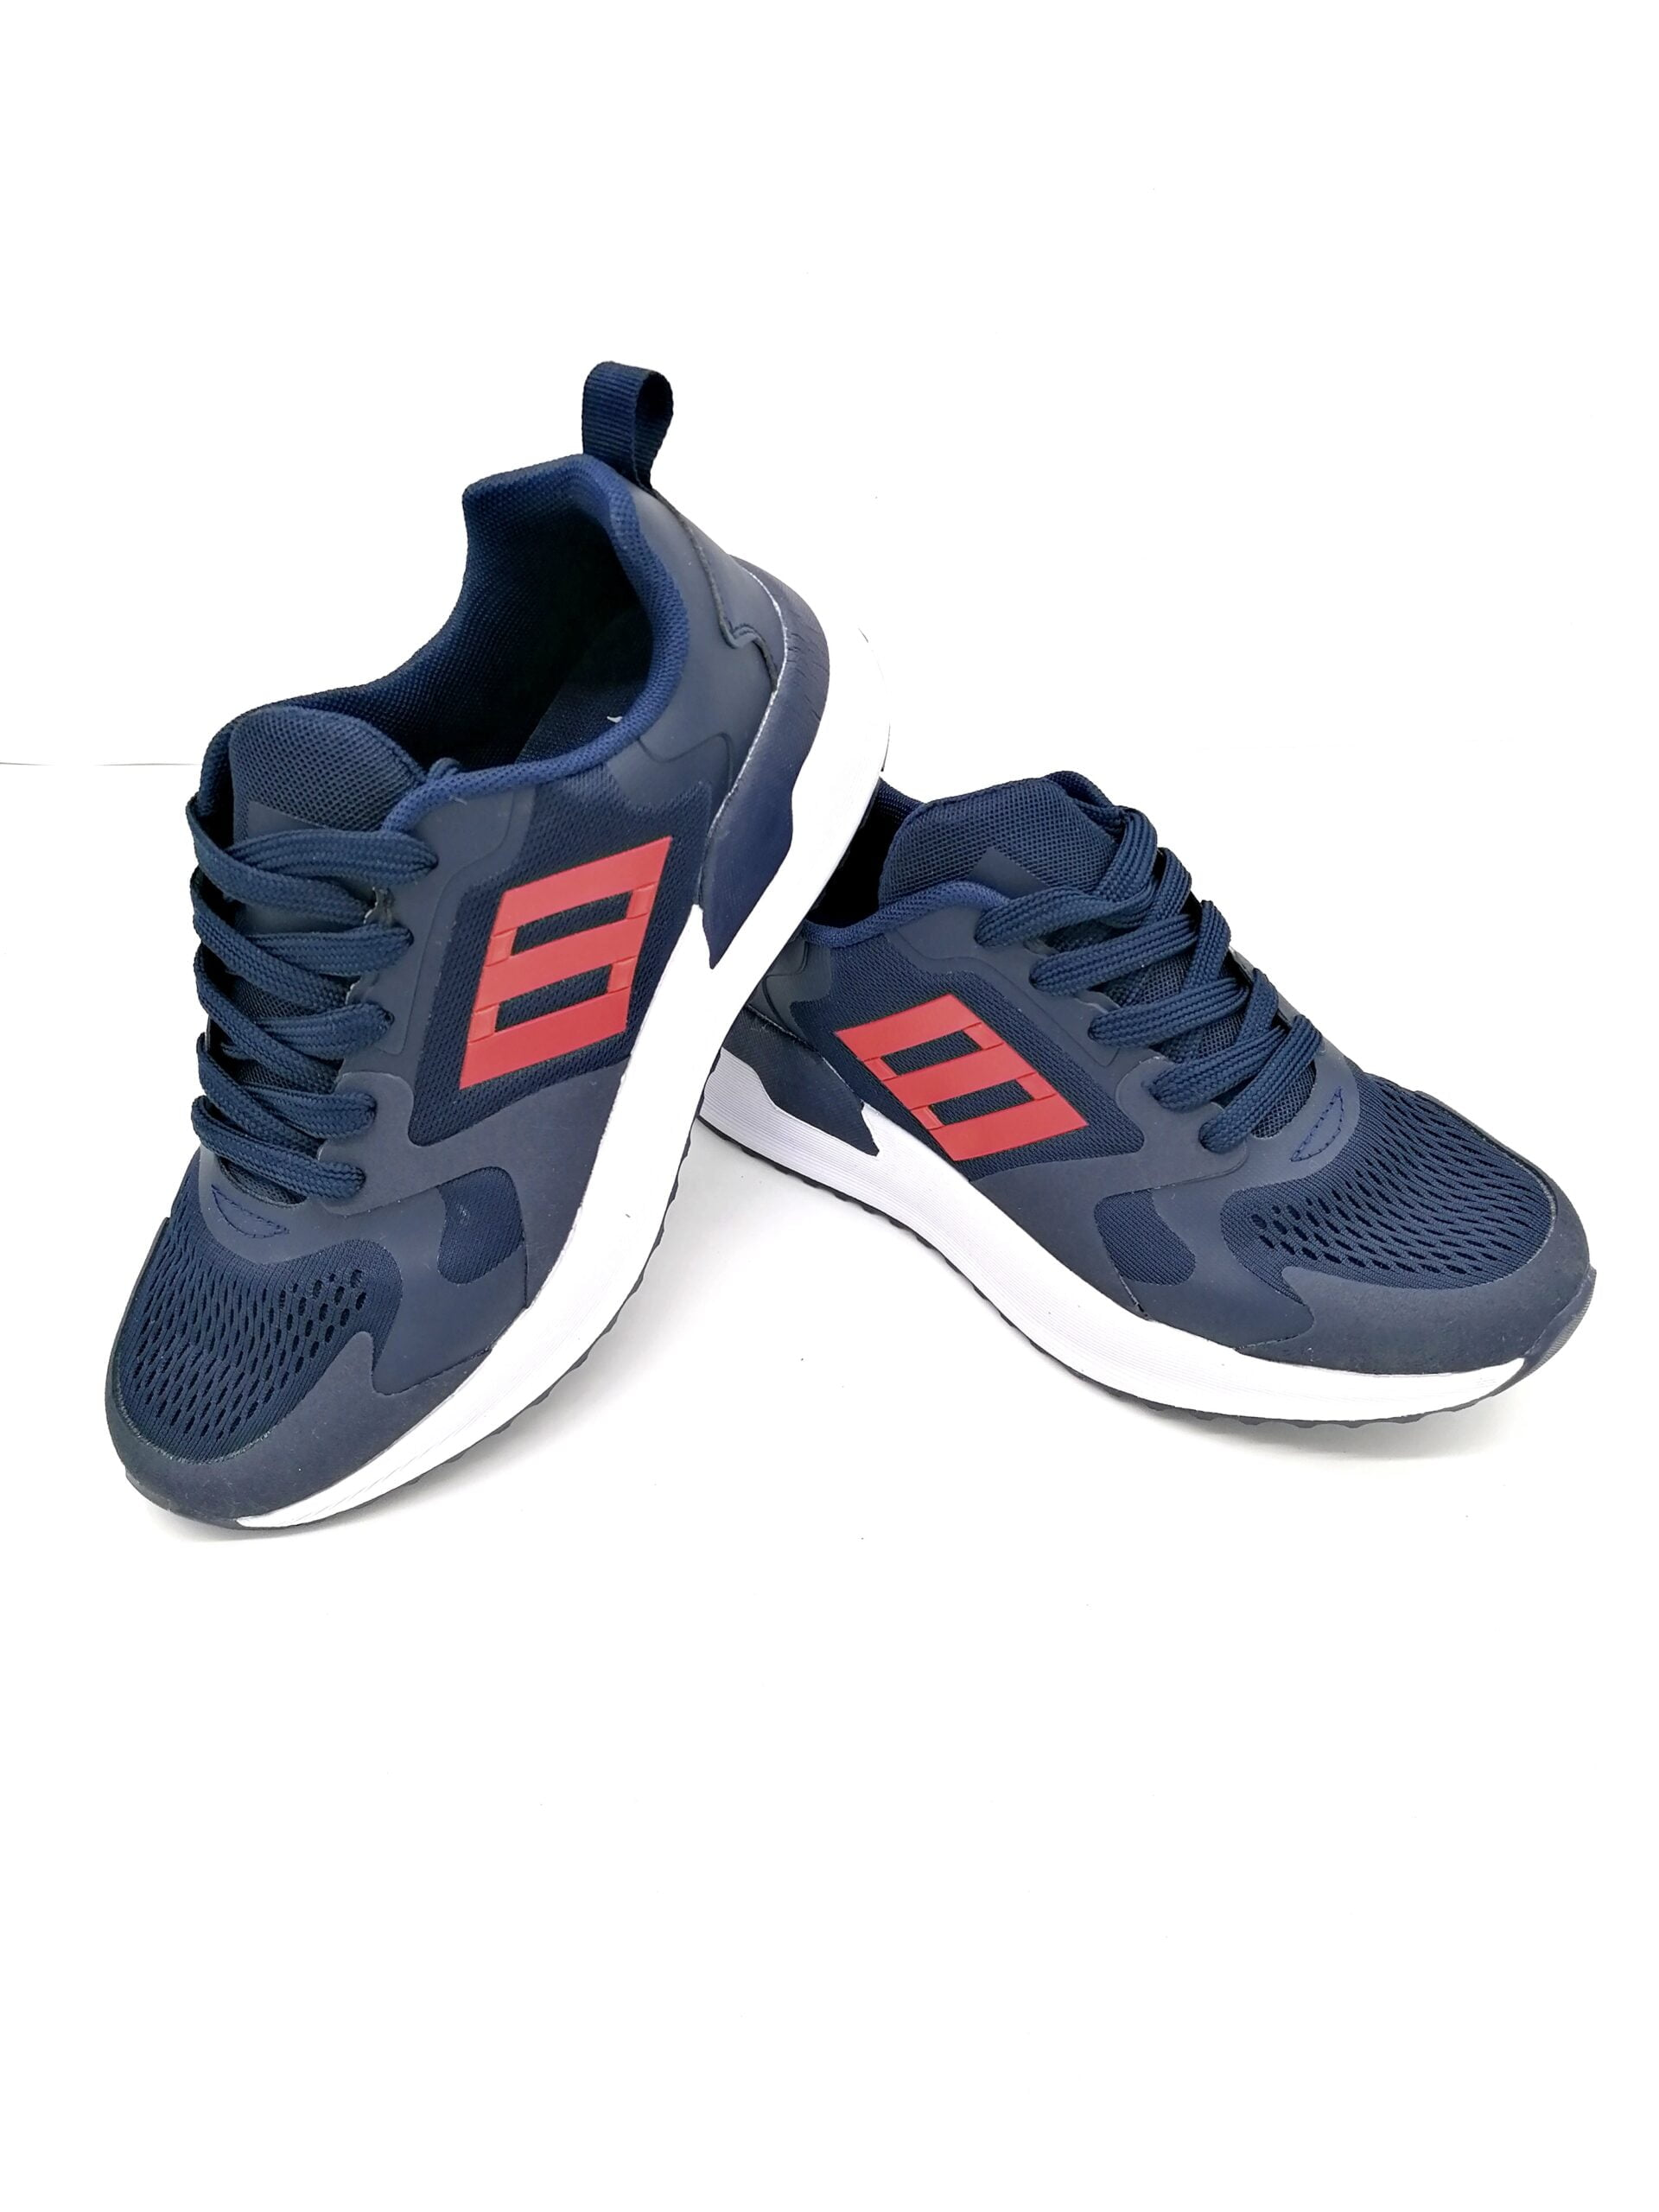 Men's BLUE-Red Sports